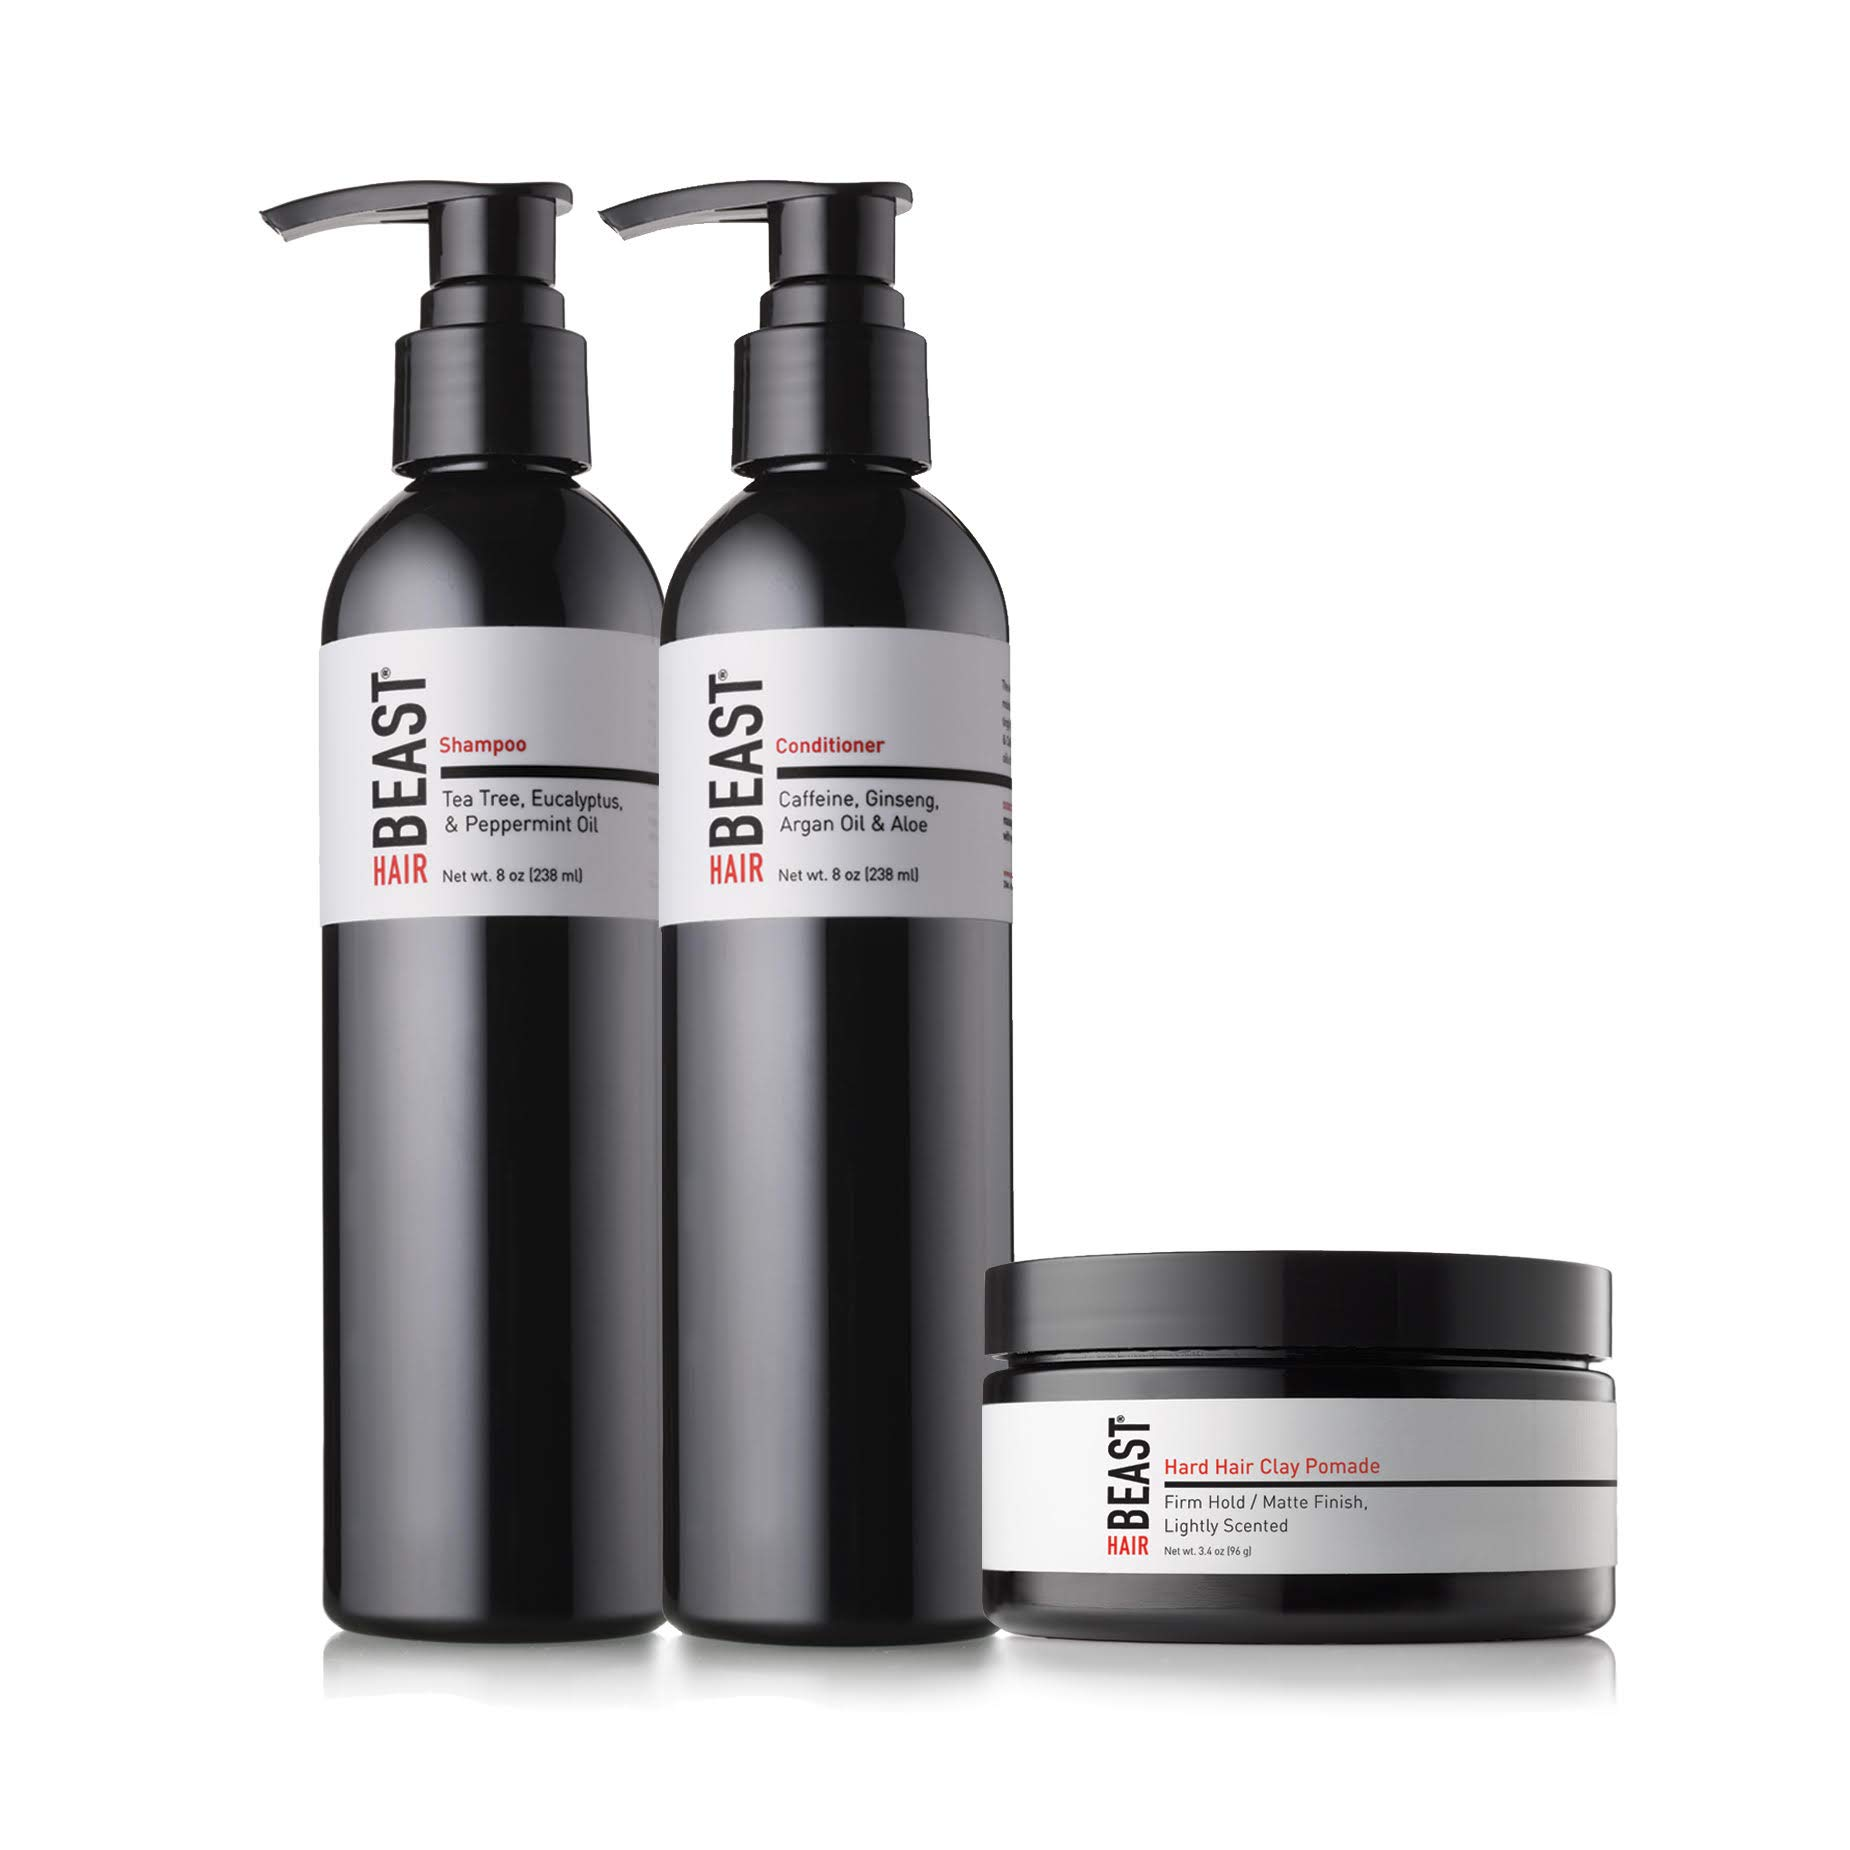 Mens Hair Products Essentials Set - Tingle Shampoo, Caffeine Conditioner, Firm-Hold Matte Finish Hair Styling Clay - Anti-DHT Tea Tree Oil Peppermint Menthol Green Tea Ginseng Hemp - Tame the Beast by Tame the Beast